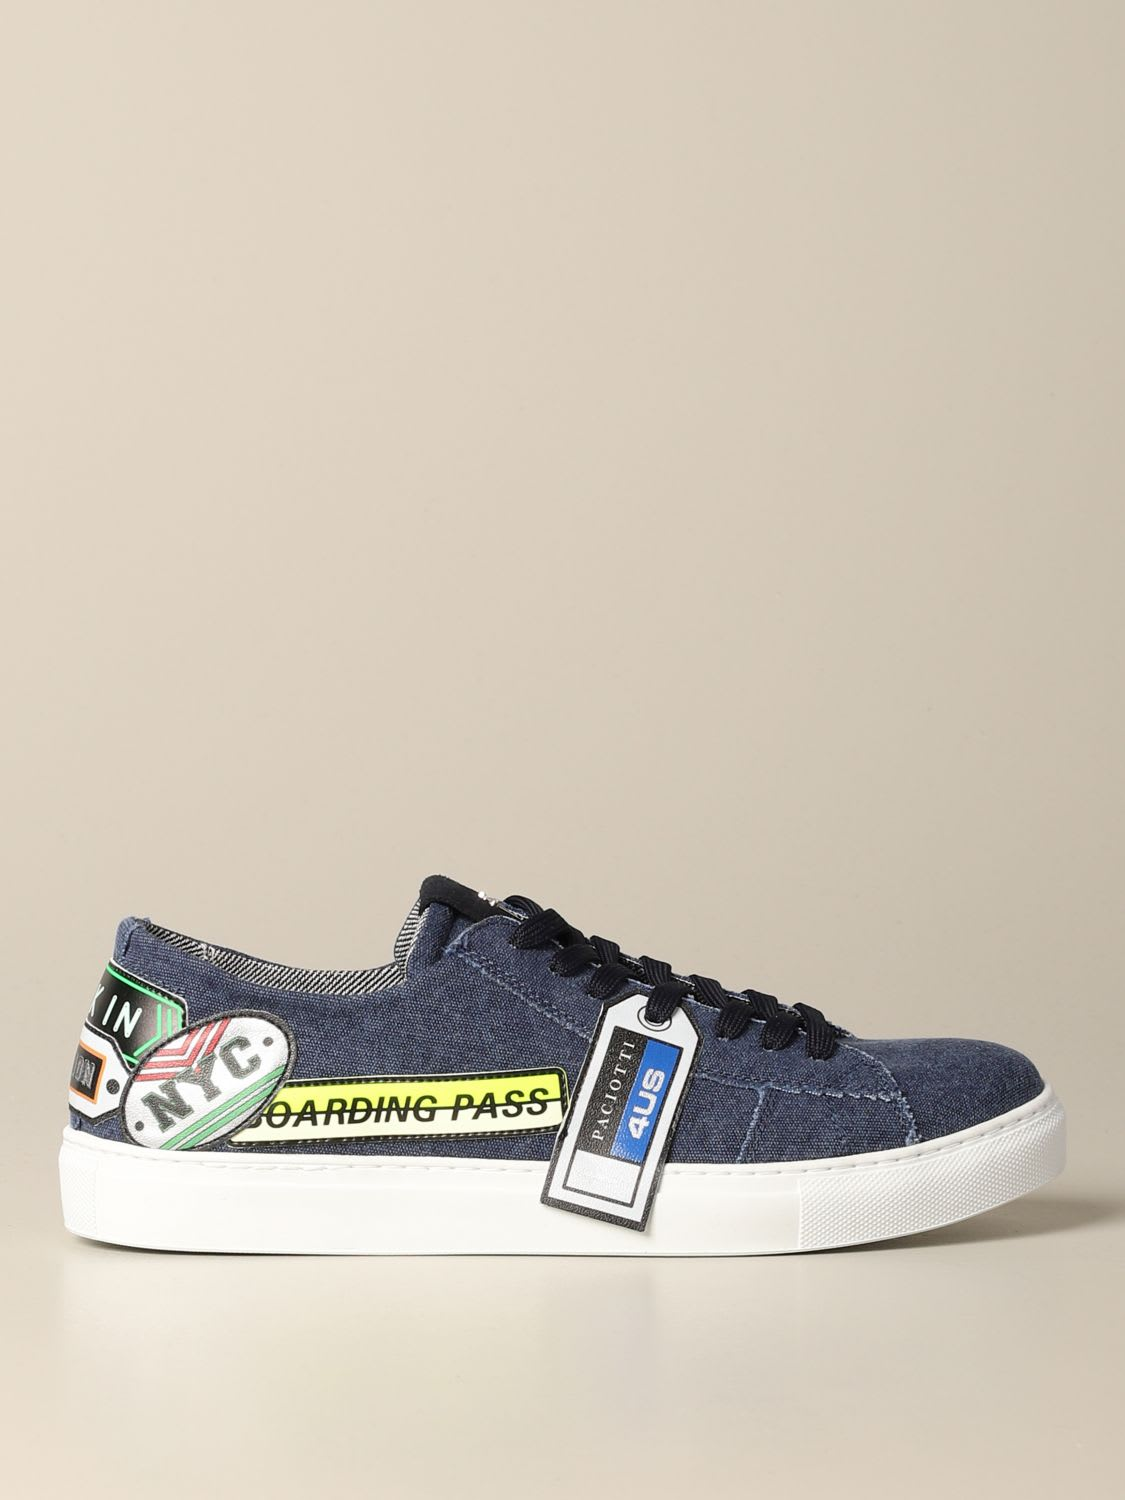 Paciotti 4us Sneakers Ramones Paciotti 4us Denim Sneakers With Patch